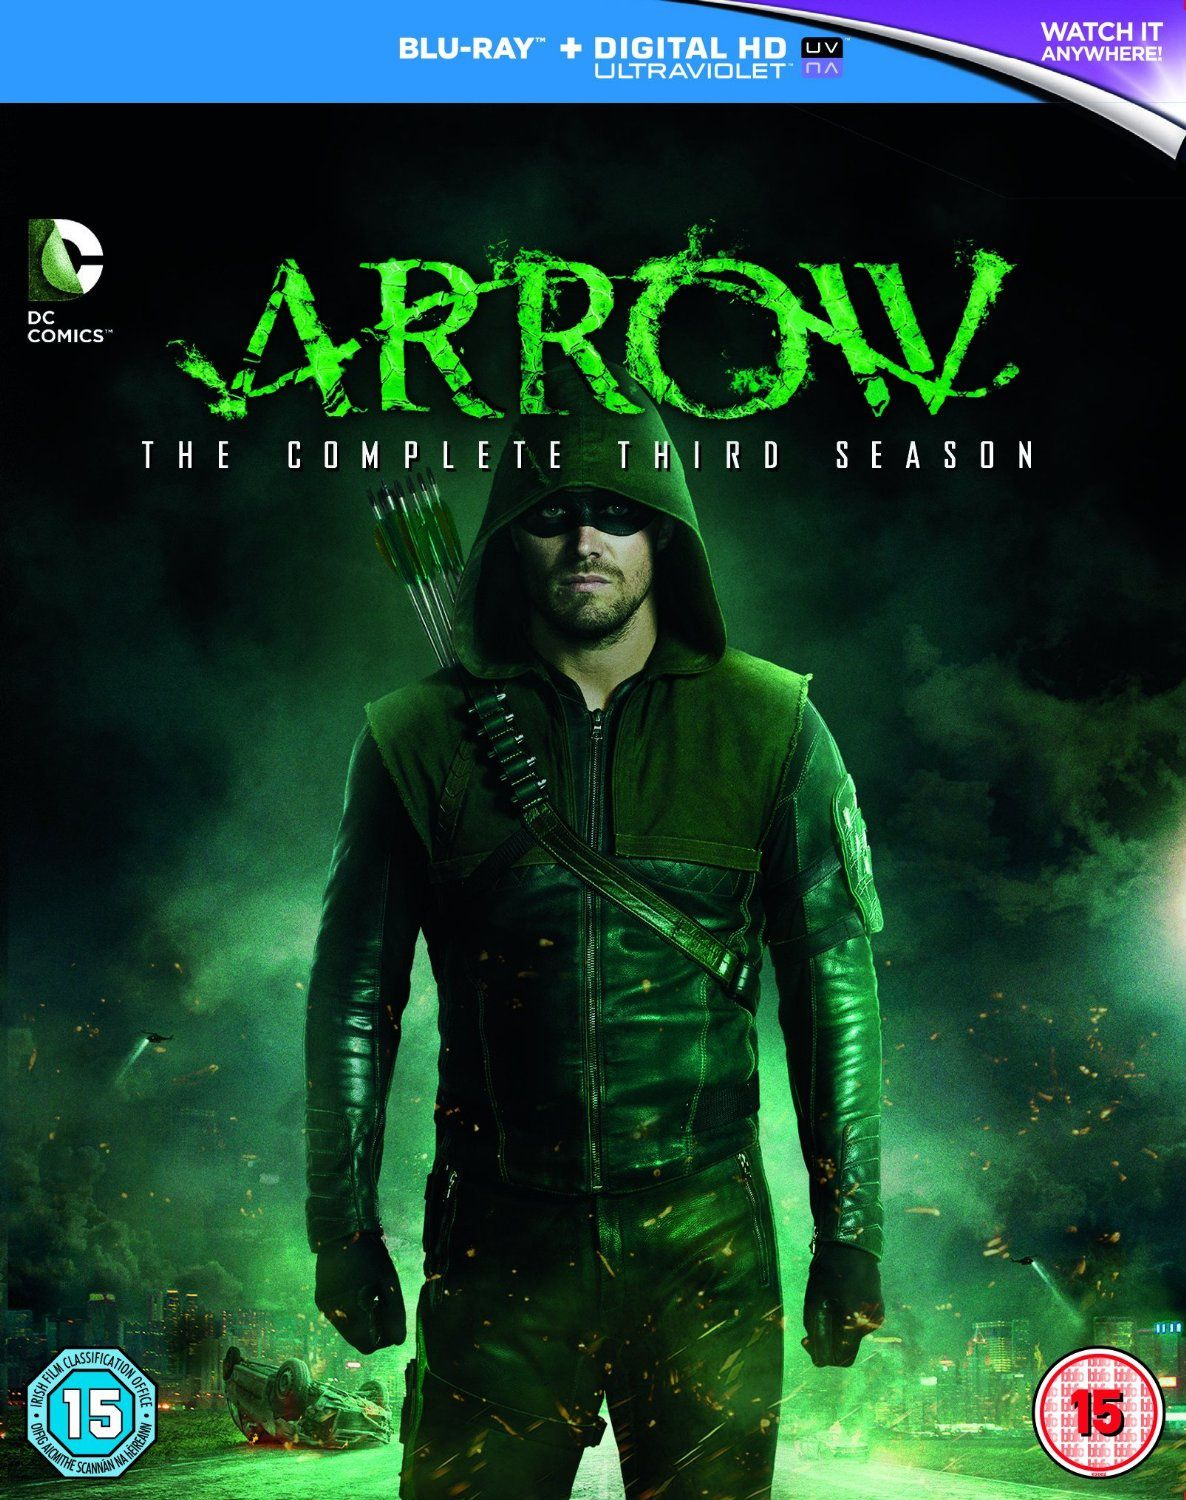 Arrow saison 3 en dvd/blu-ray